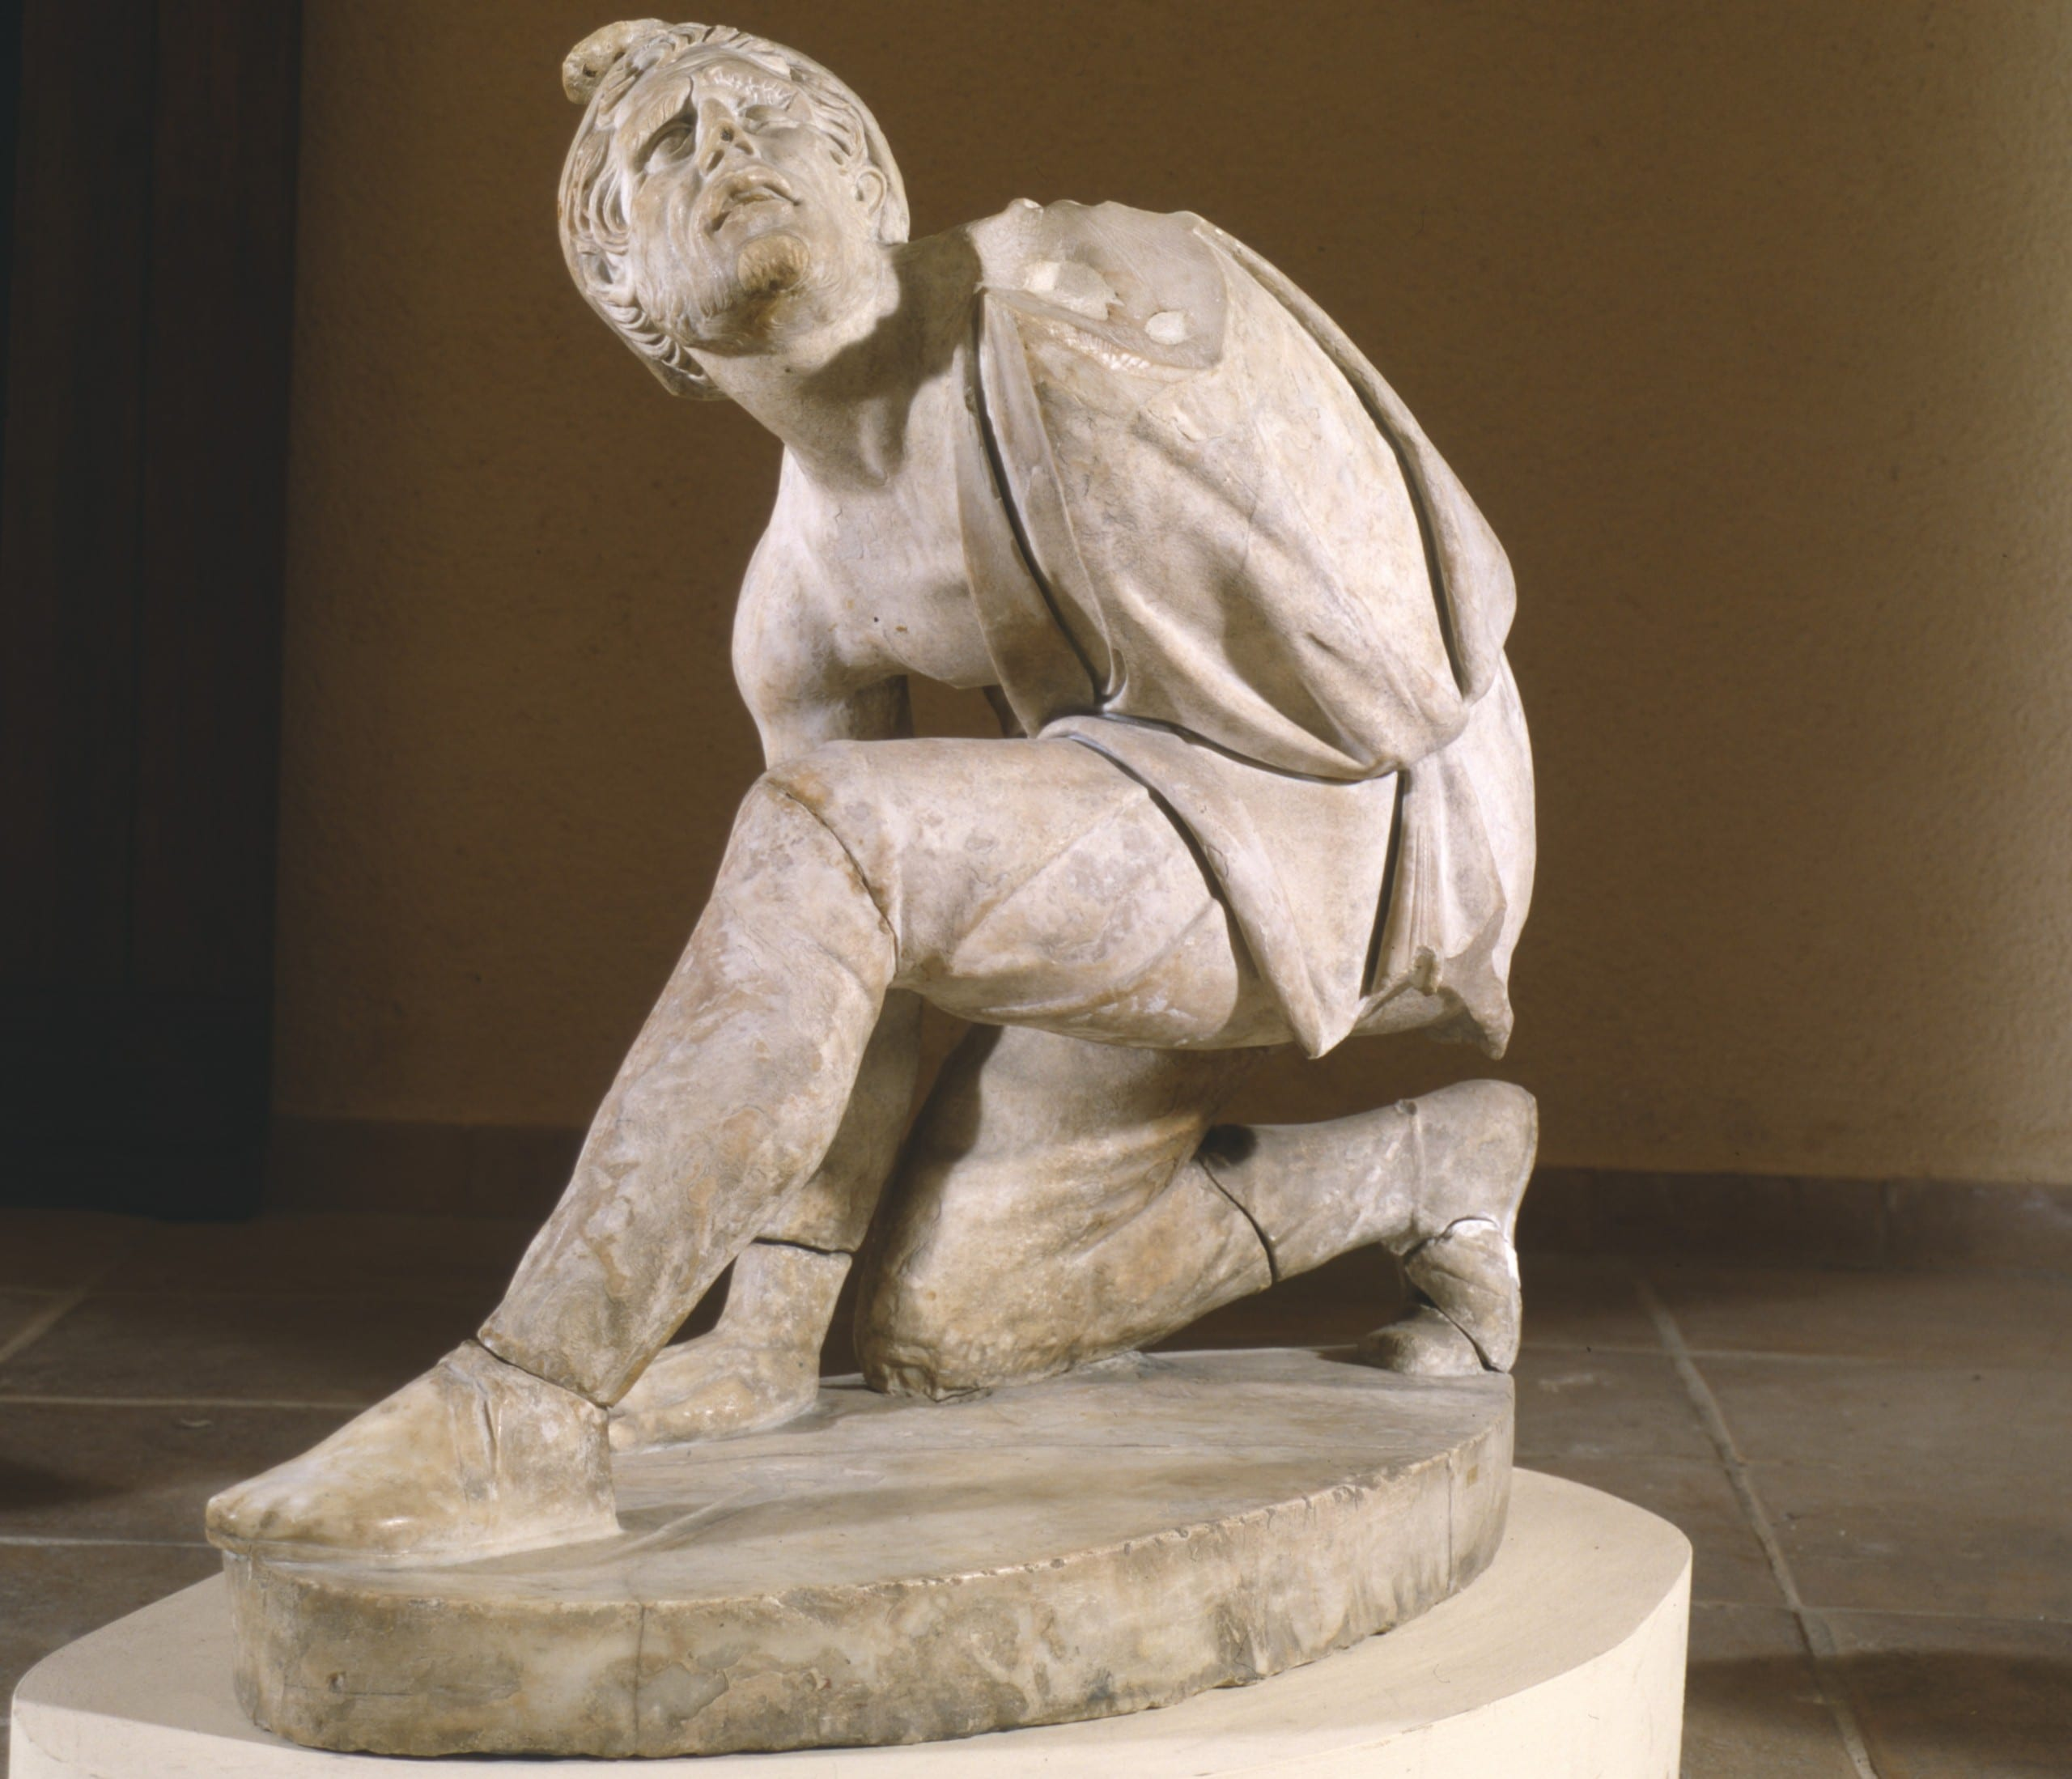 Figure 3. Defeated Persian, Roman copy of a Greek sculpture of ca. 200 BCE (Musée Granet, Ville d'Aix-en-Provence; image supplied by the museum).